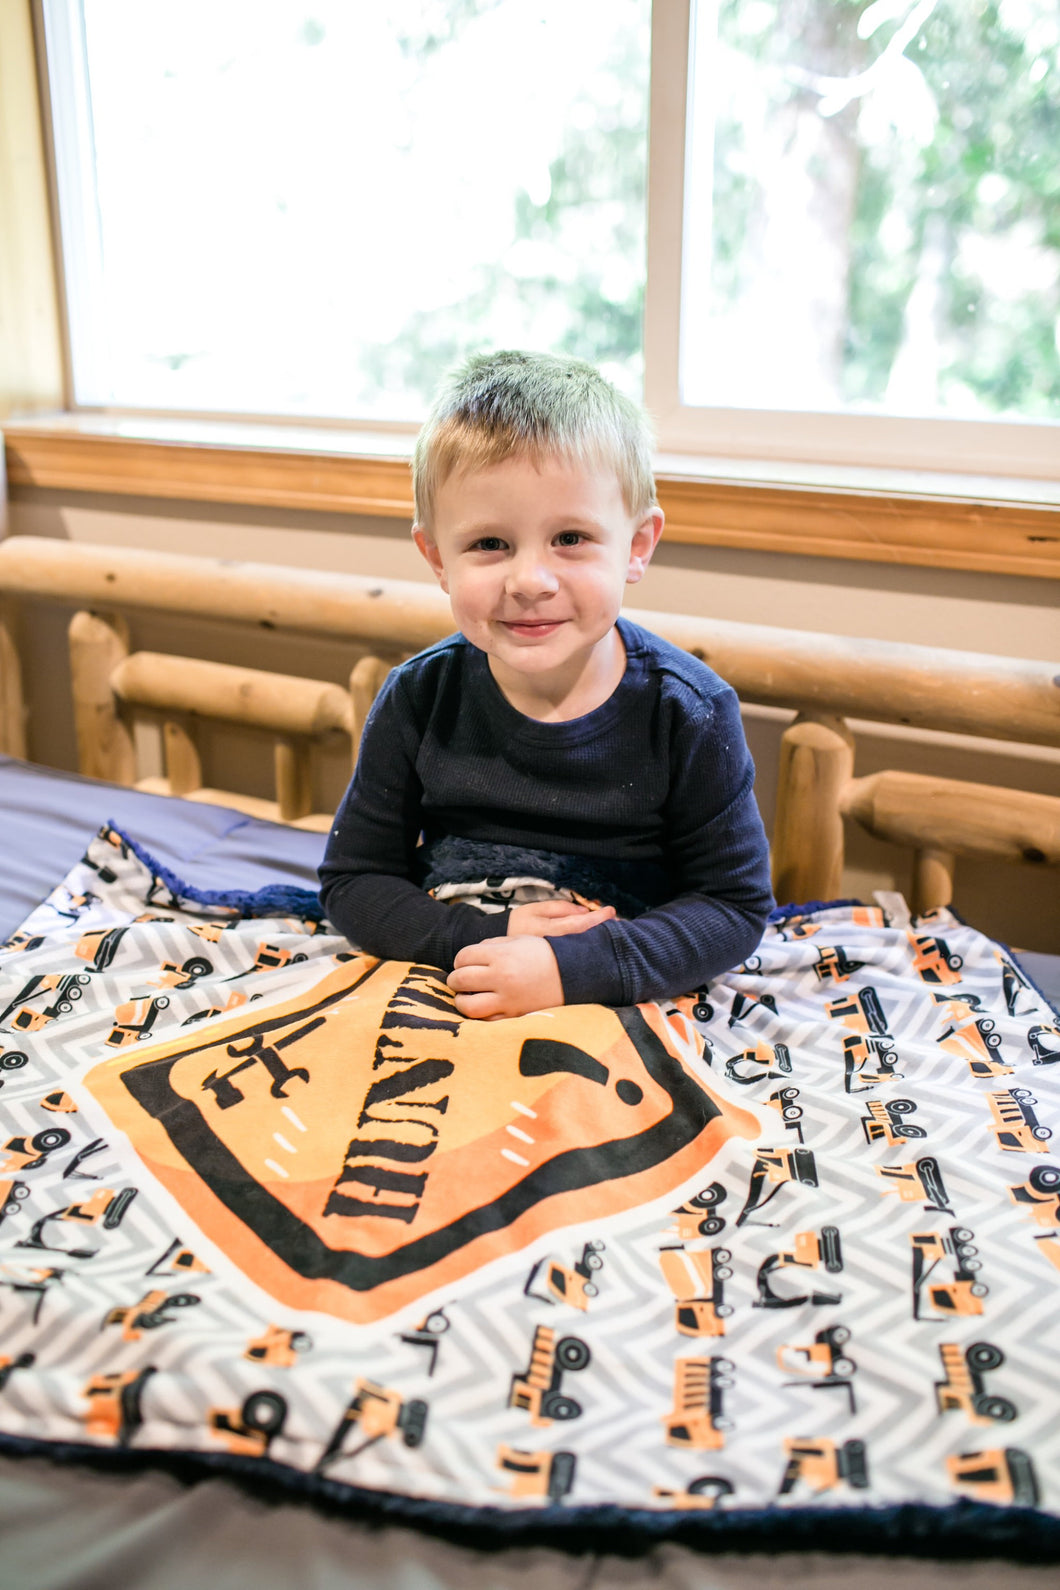 Personalized Construction Blanket - The Snuggly Geekling